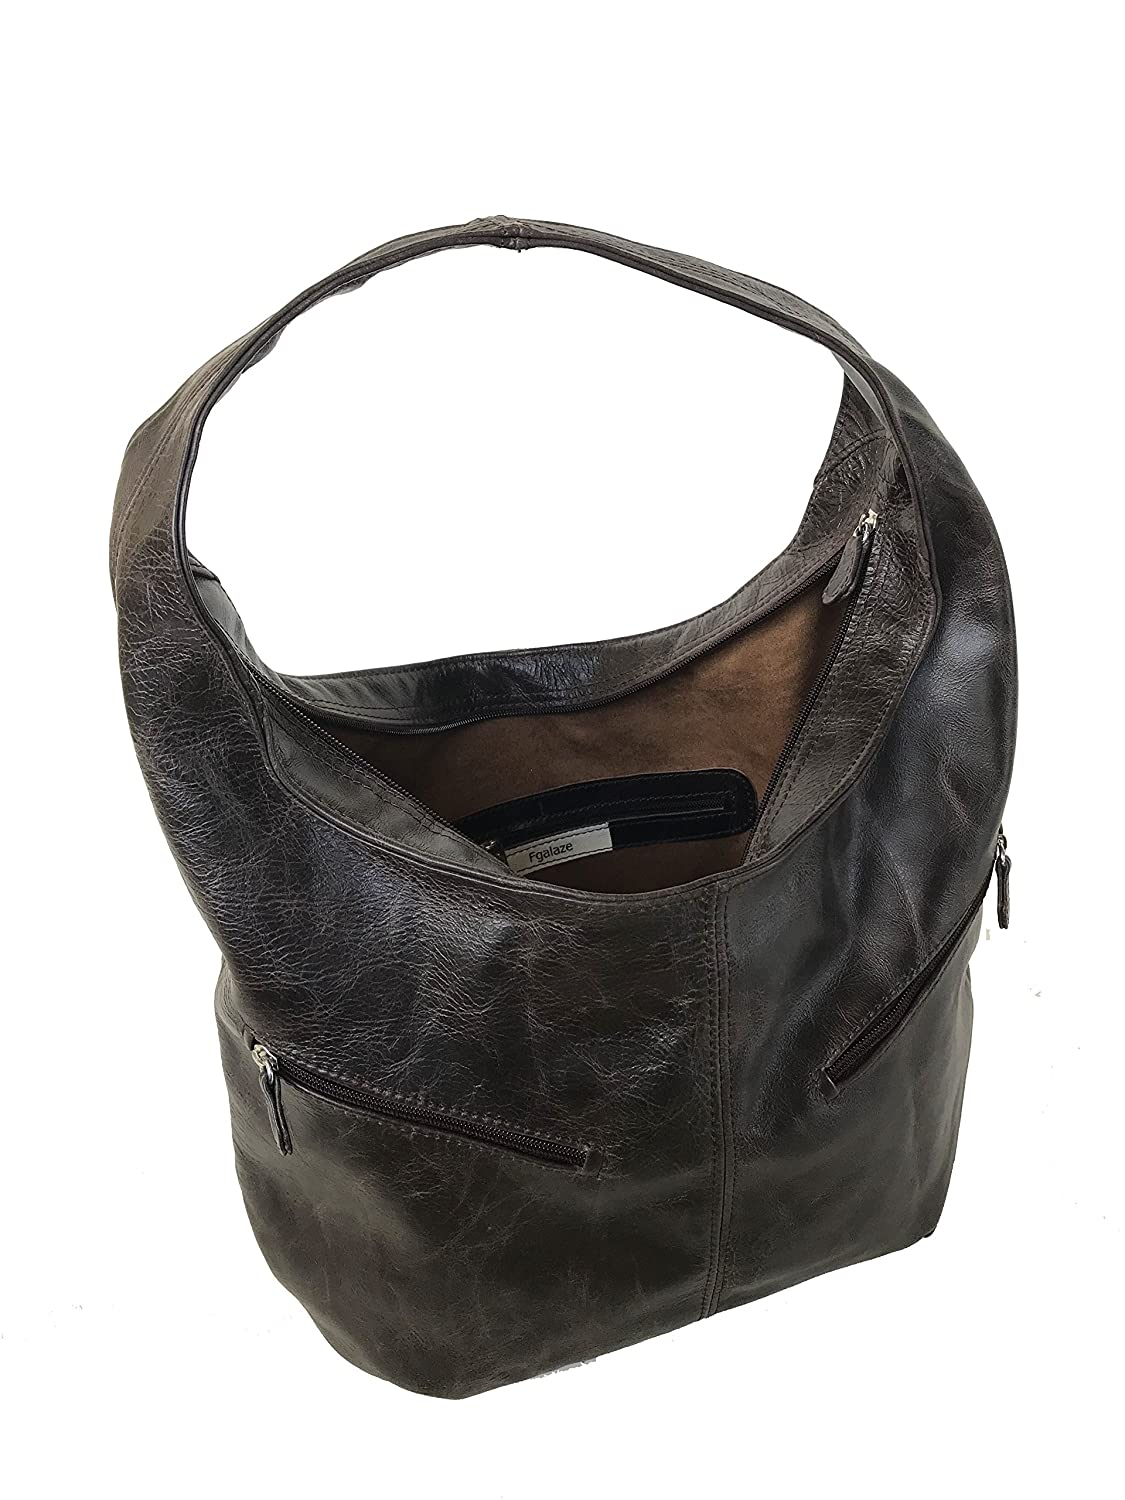 ac60ed6ae24a Amazon.com  Fgalaze Distressed Wash Leather Hobo Purse w Pockets ...